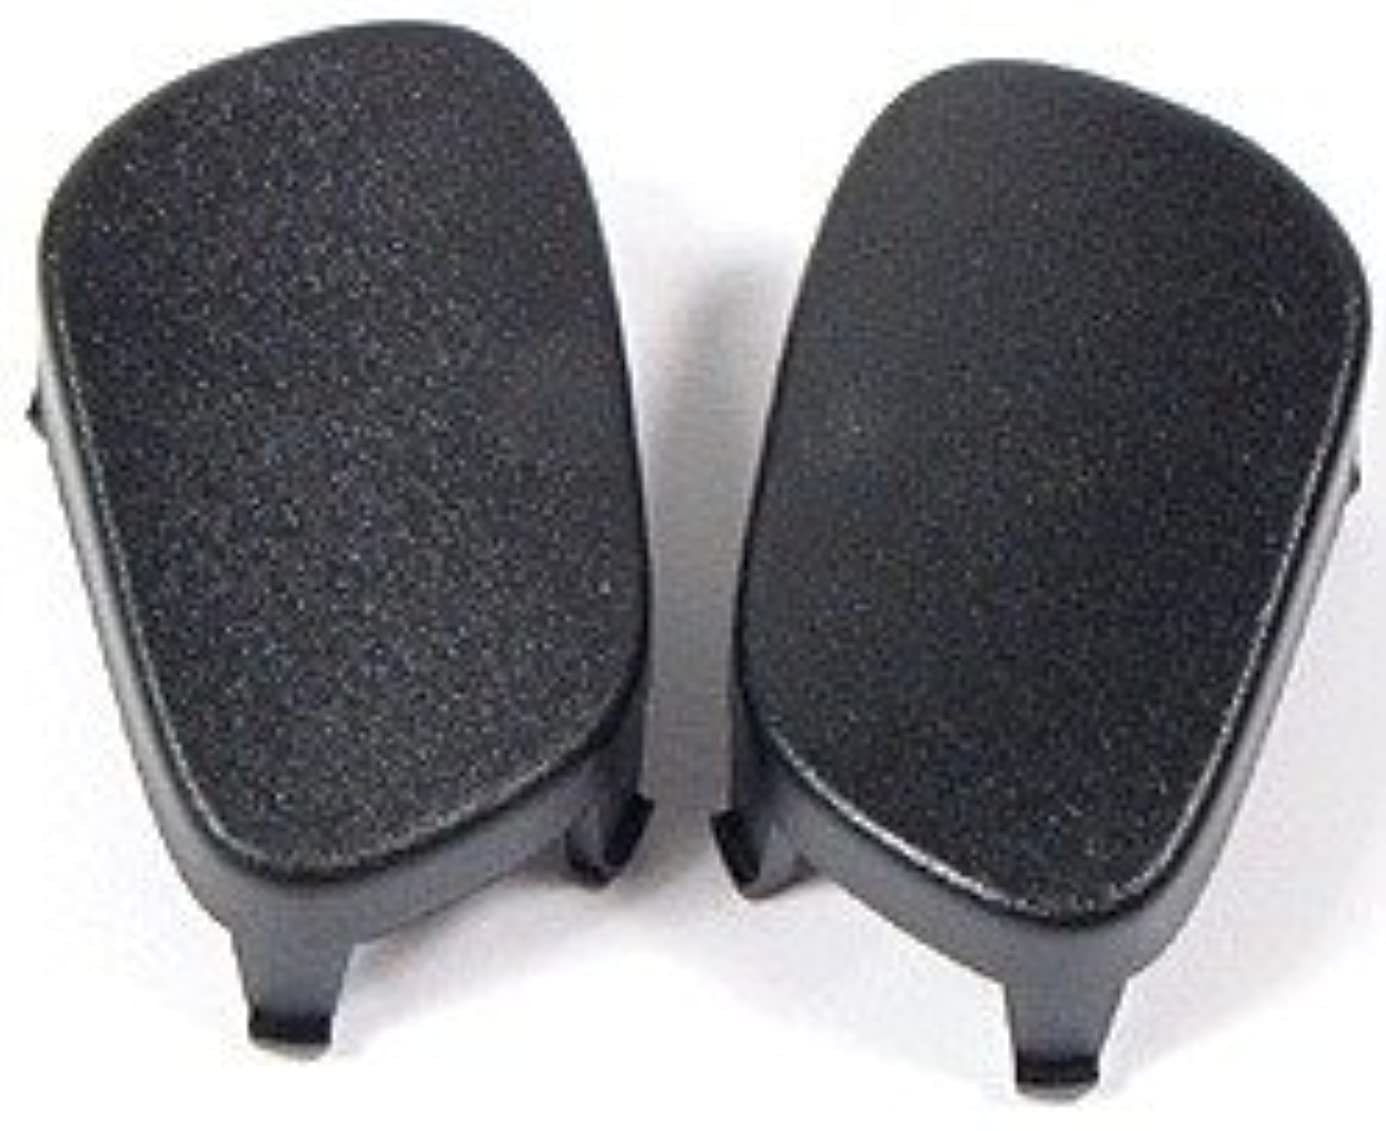 Horn Button Covers for Land Rover Discovery 2 uqi7131736